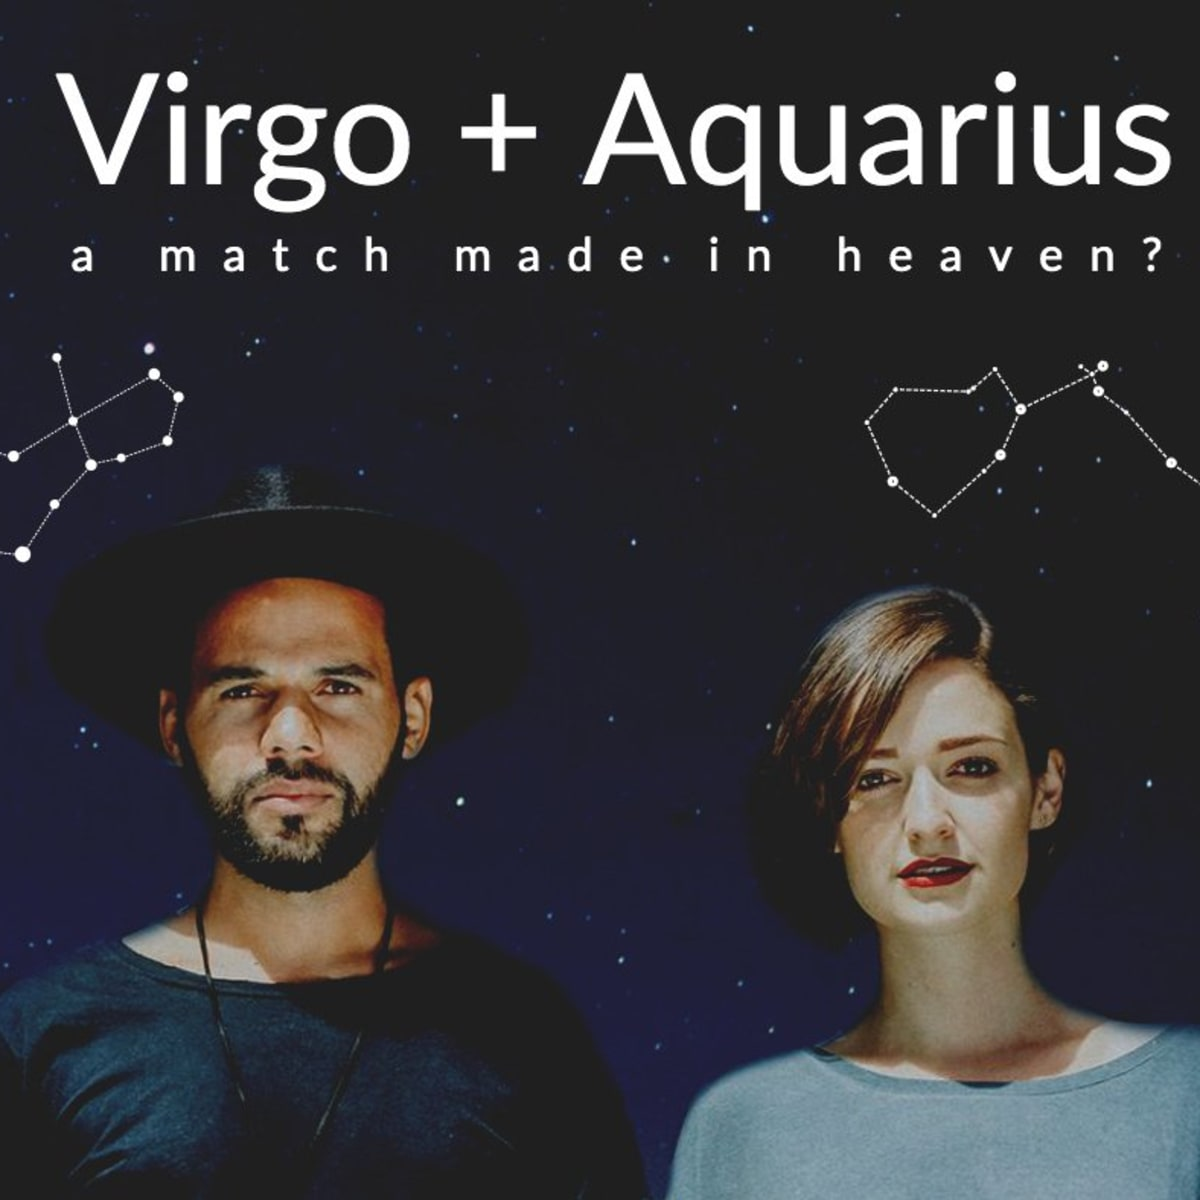 What astrological sign is most compatible with virgo